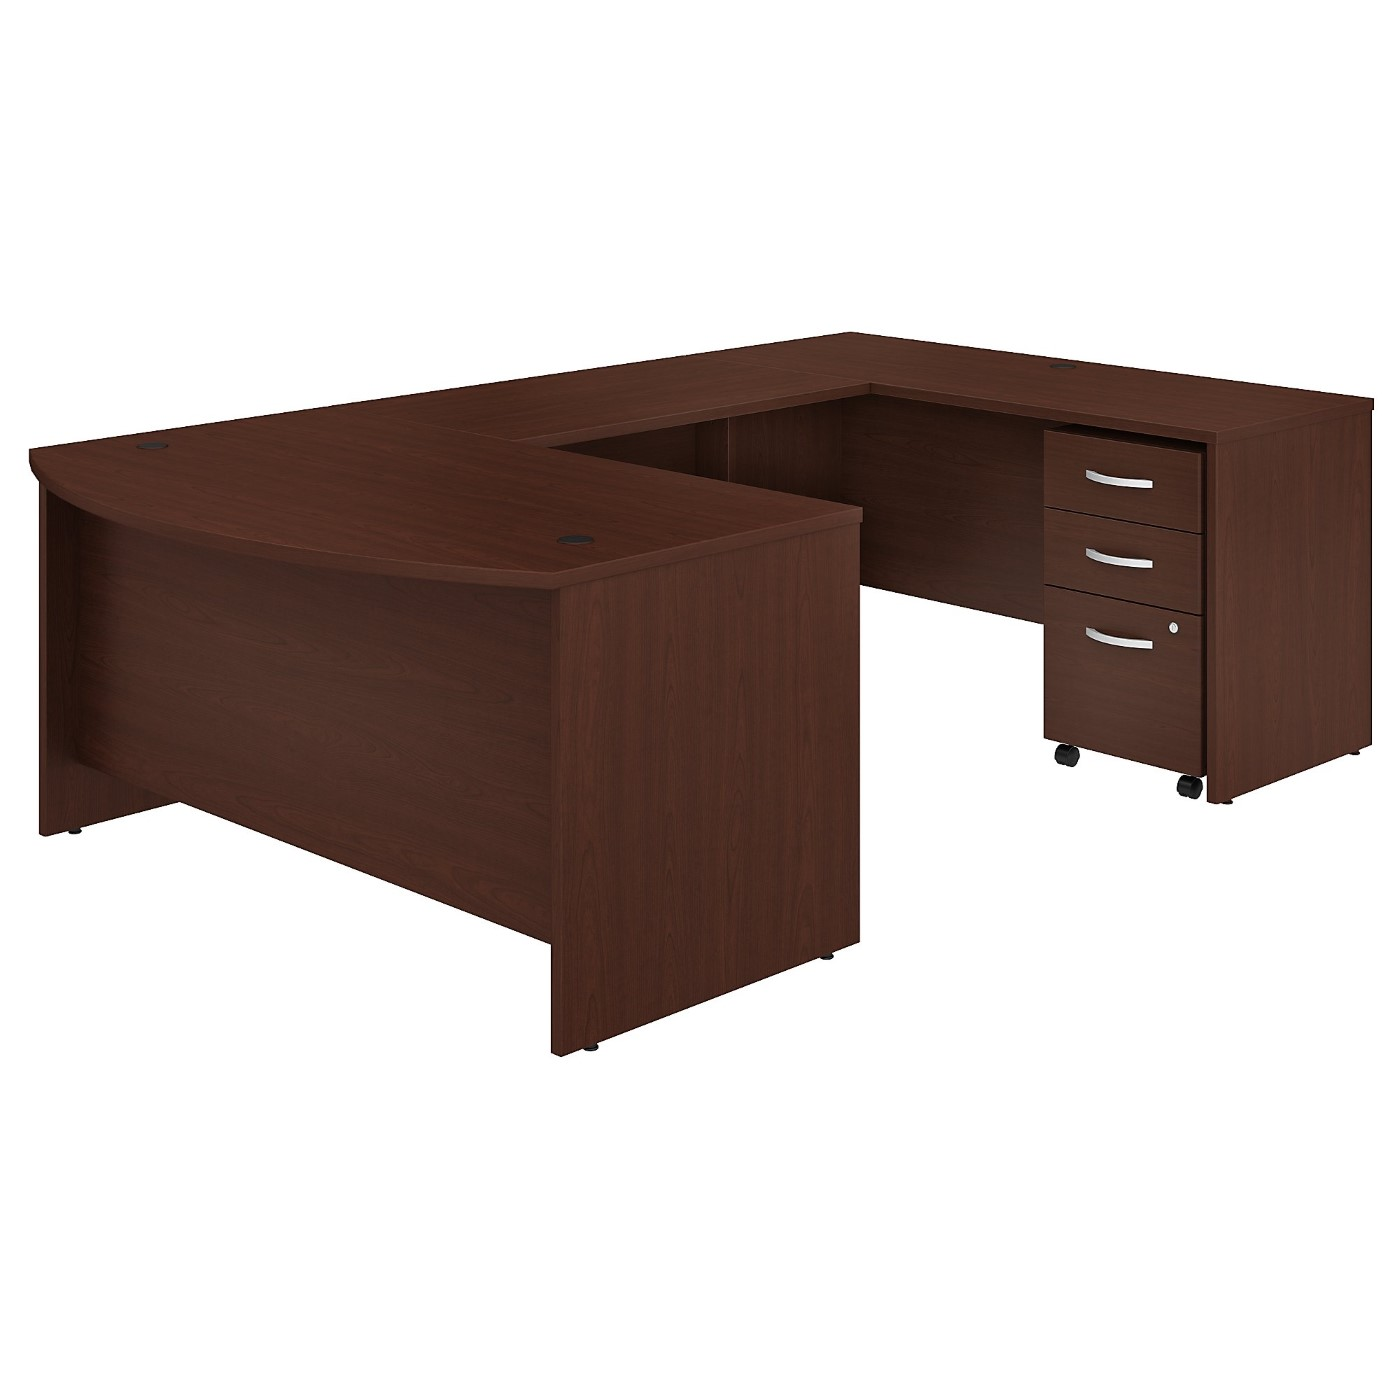 BUSH BUSINESS FURNITURE STUDIO C 60W X 36D U SHAPED DESK WITH MOBILE FILE CABINET. FREE SHIPPING